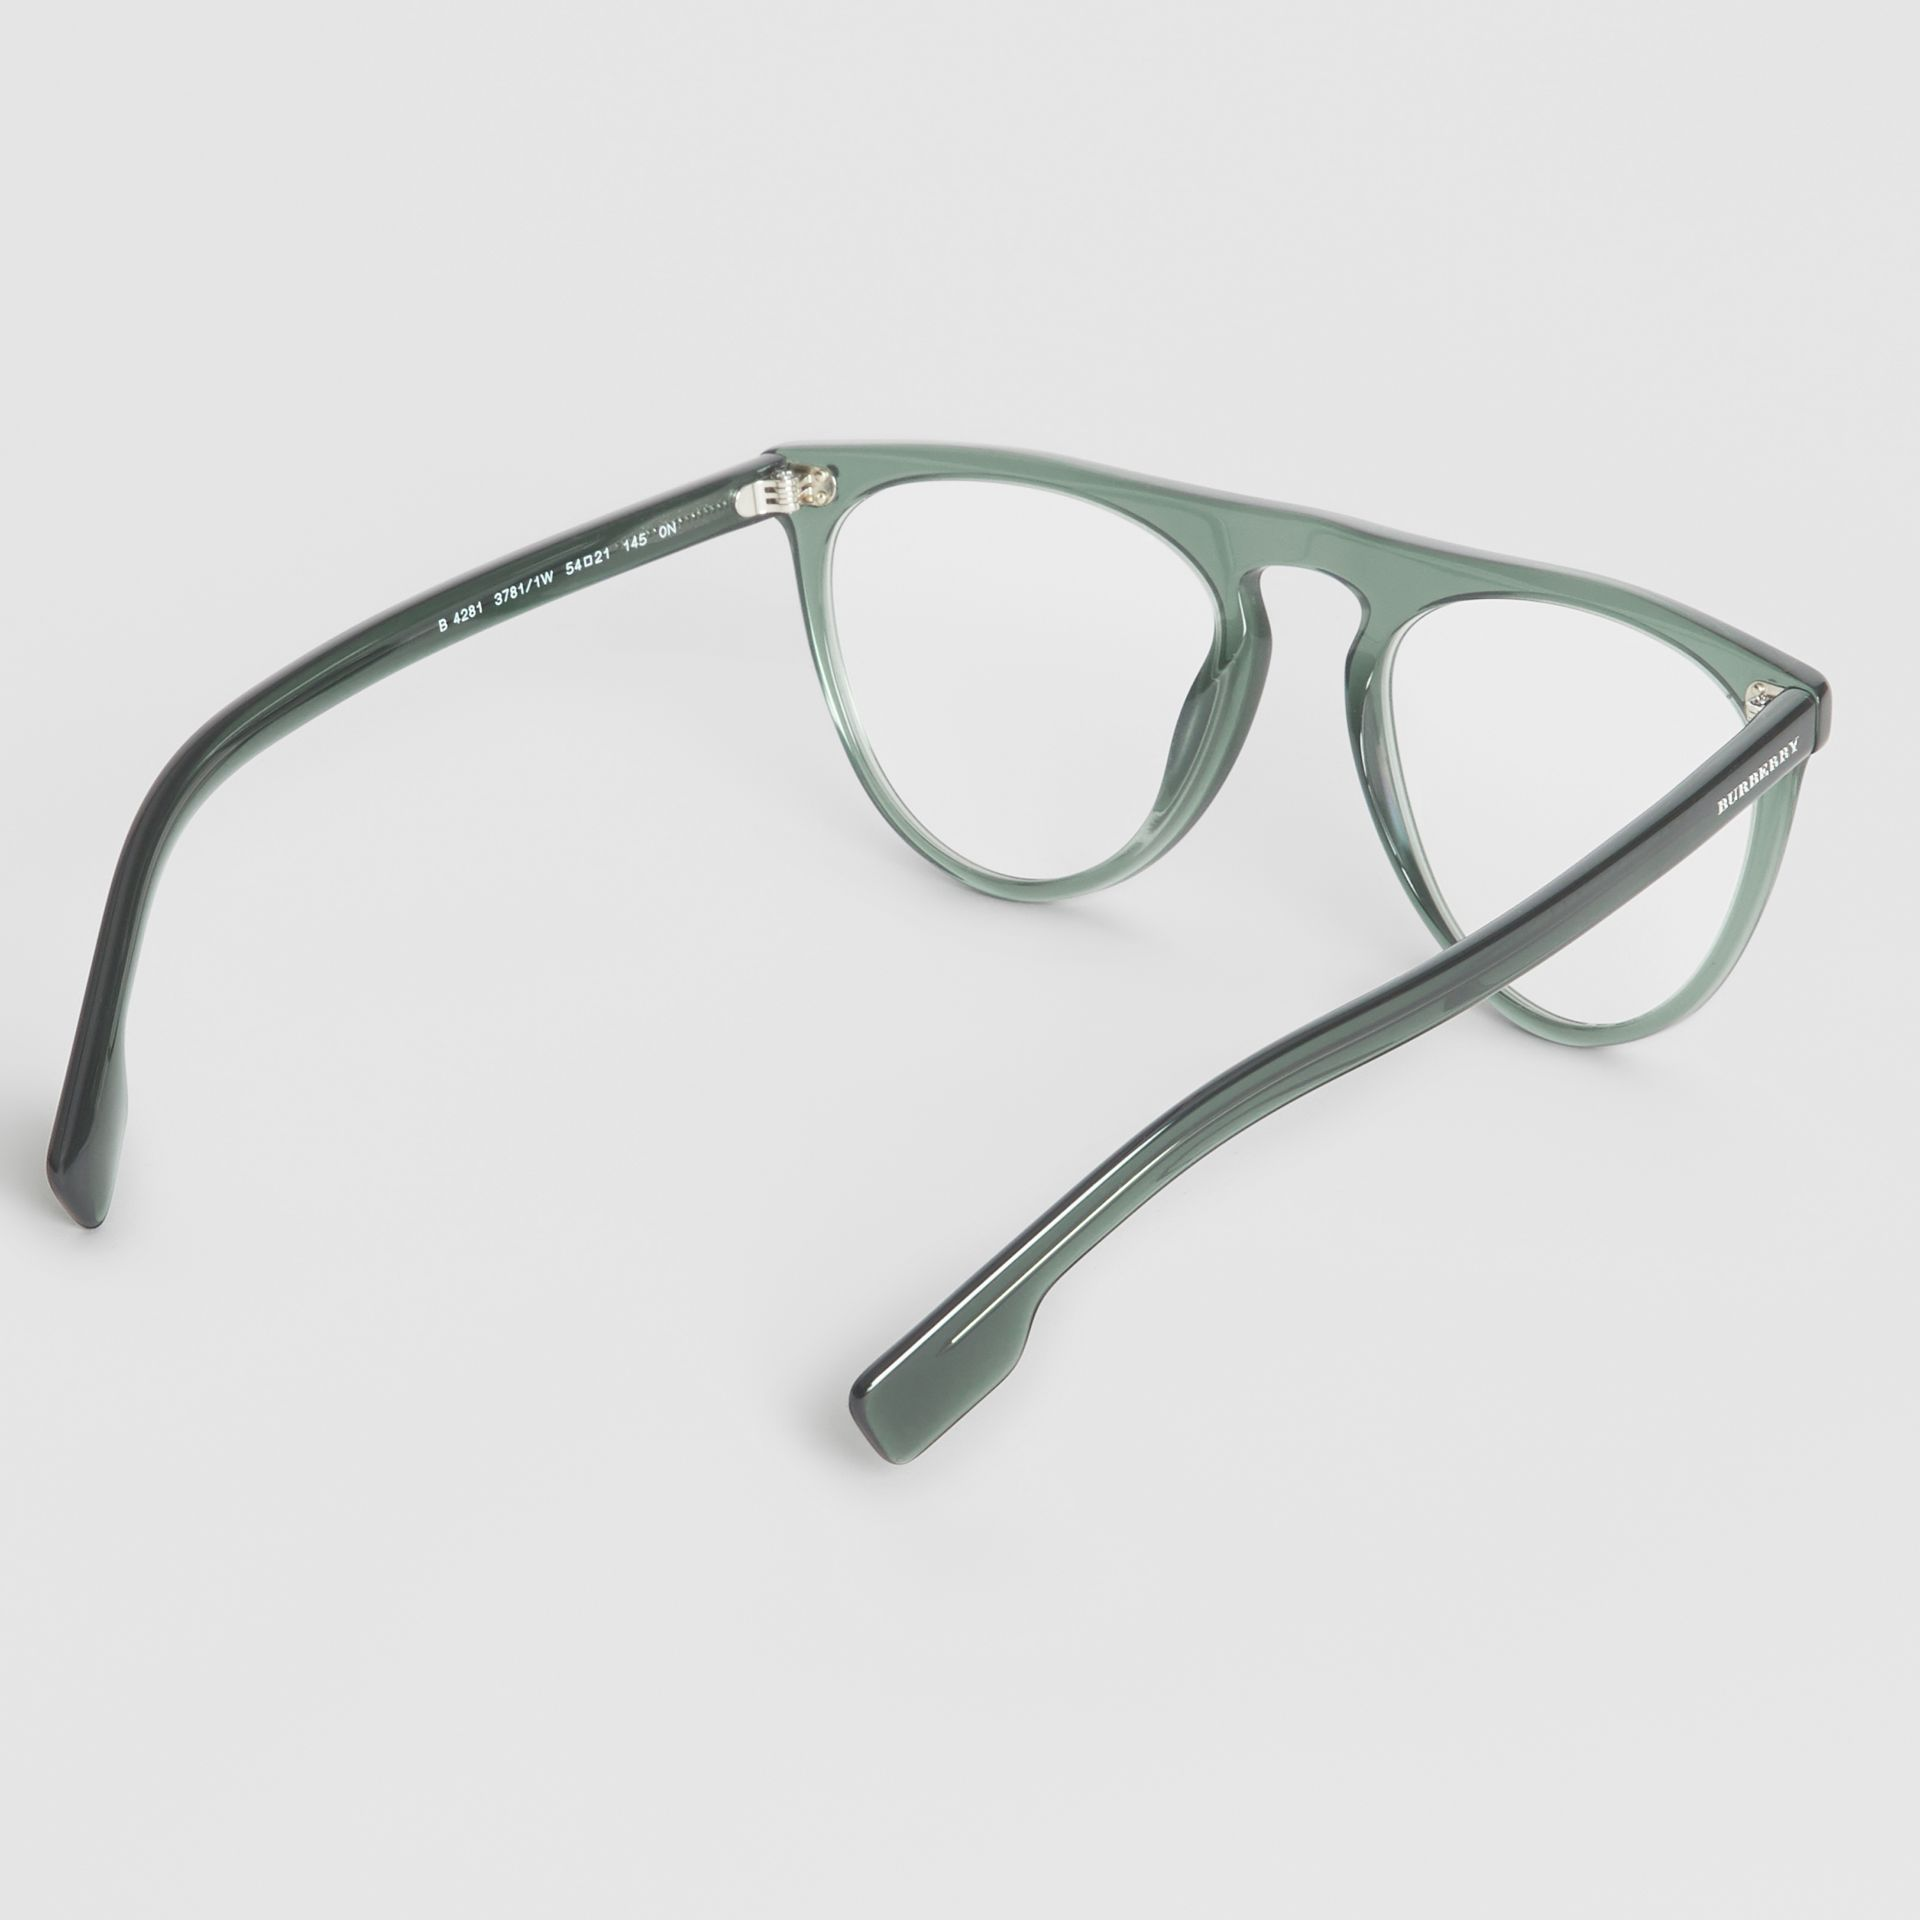 Keyhole D-shaped Optical Frames in Green - Men | Burberry Canada - gallery image 4